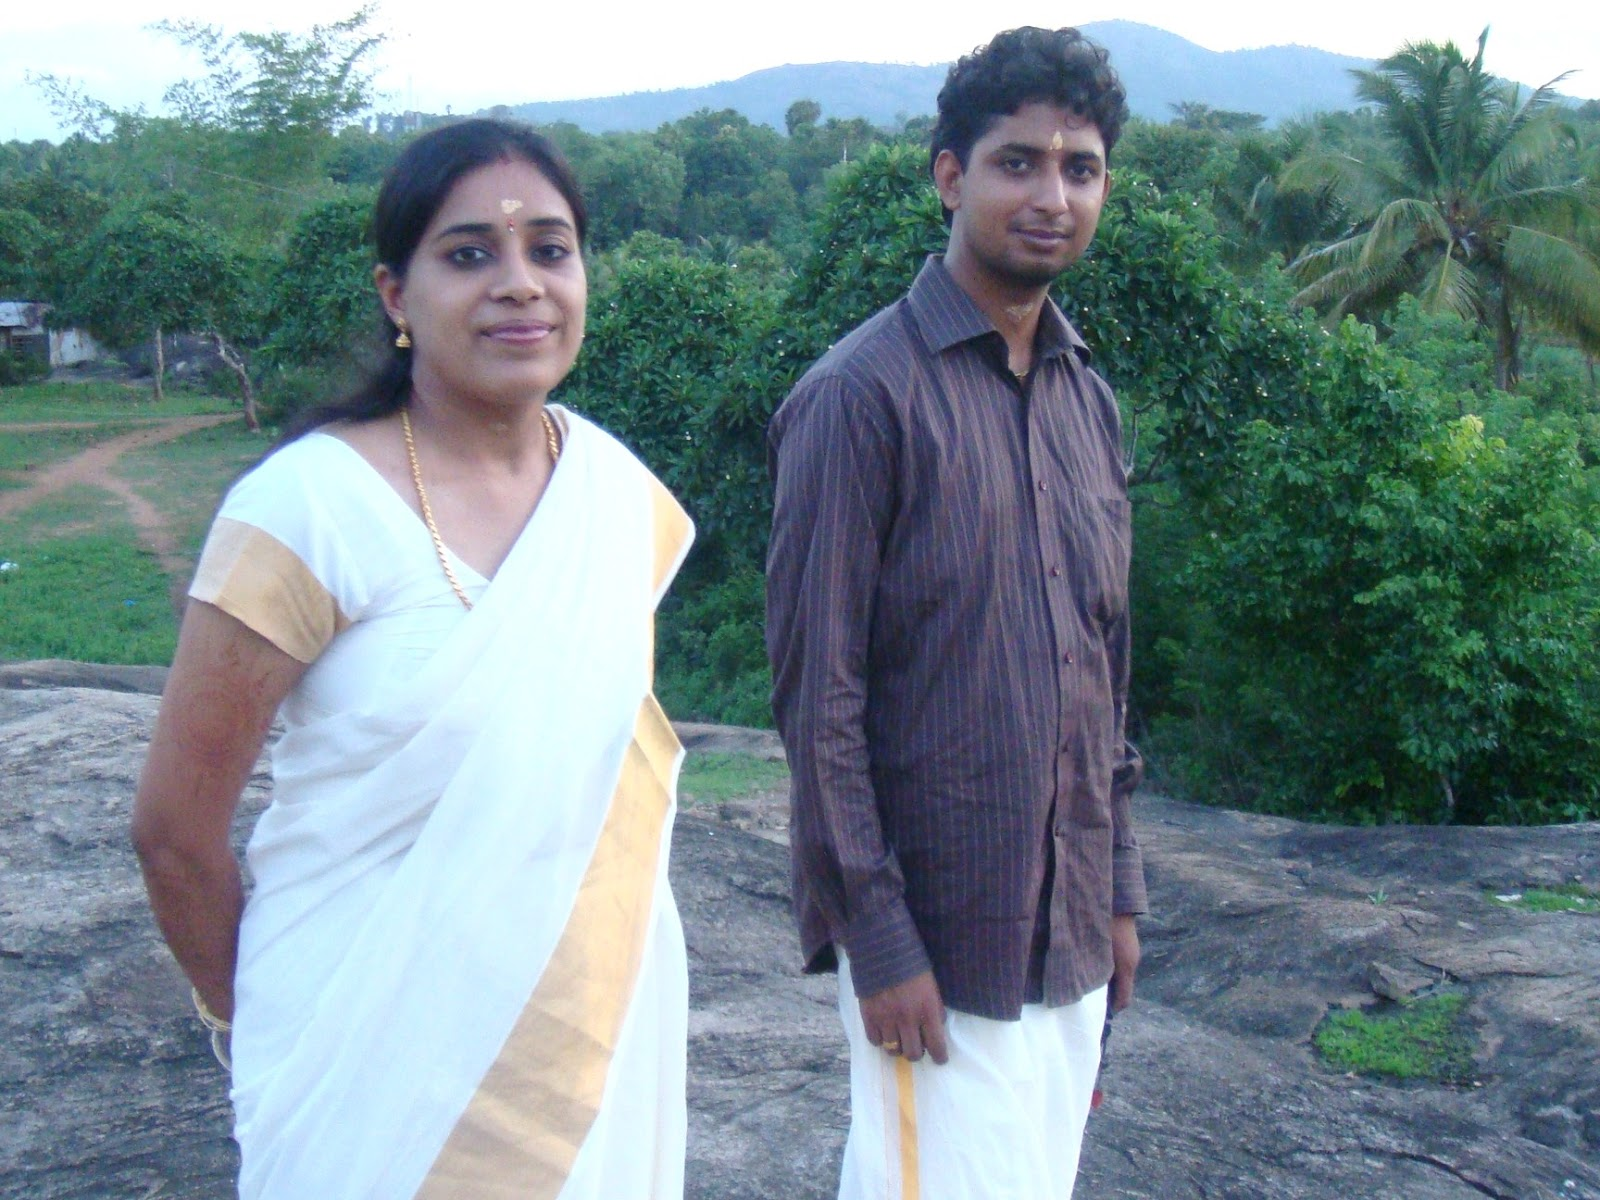 palakkad dating photo Meet a man from palakkad on getmale, the free dating site in palakkad.